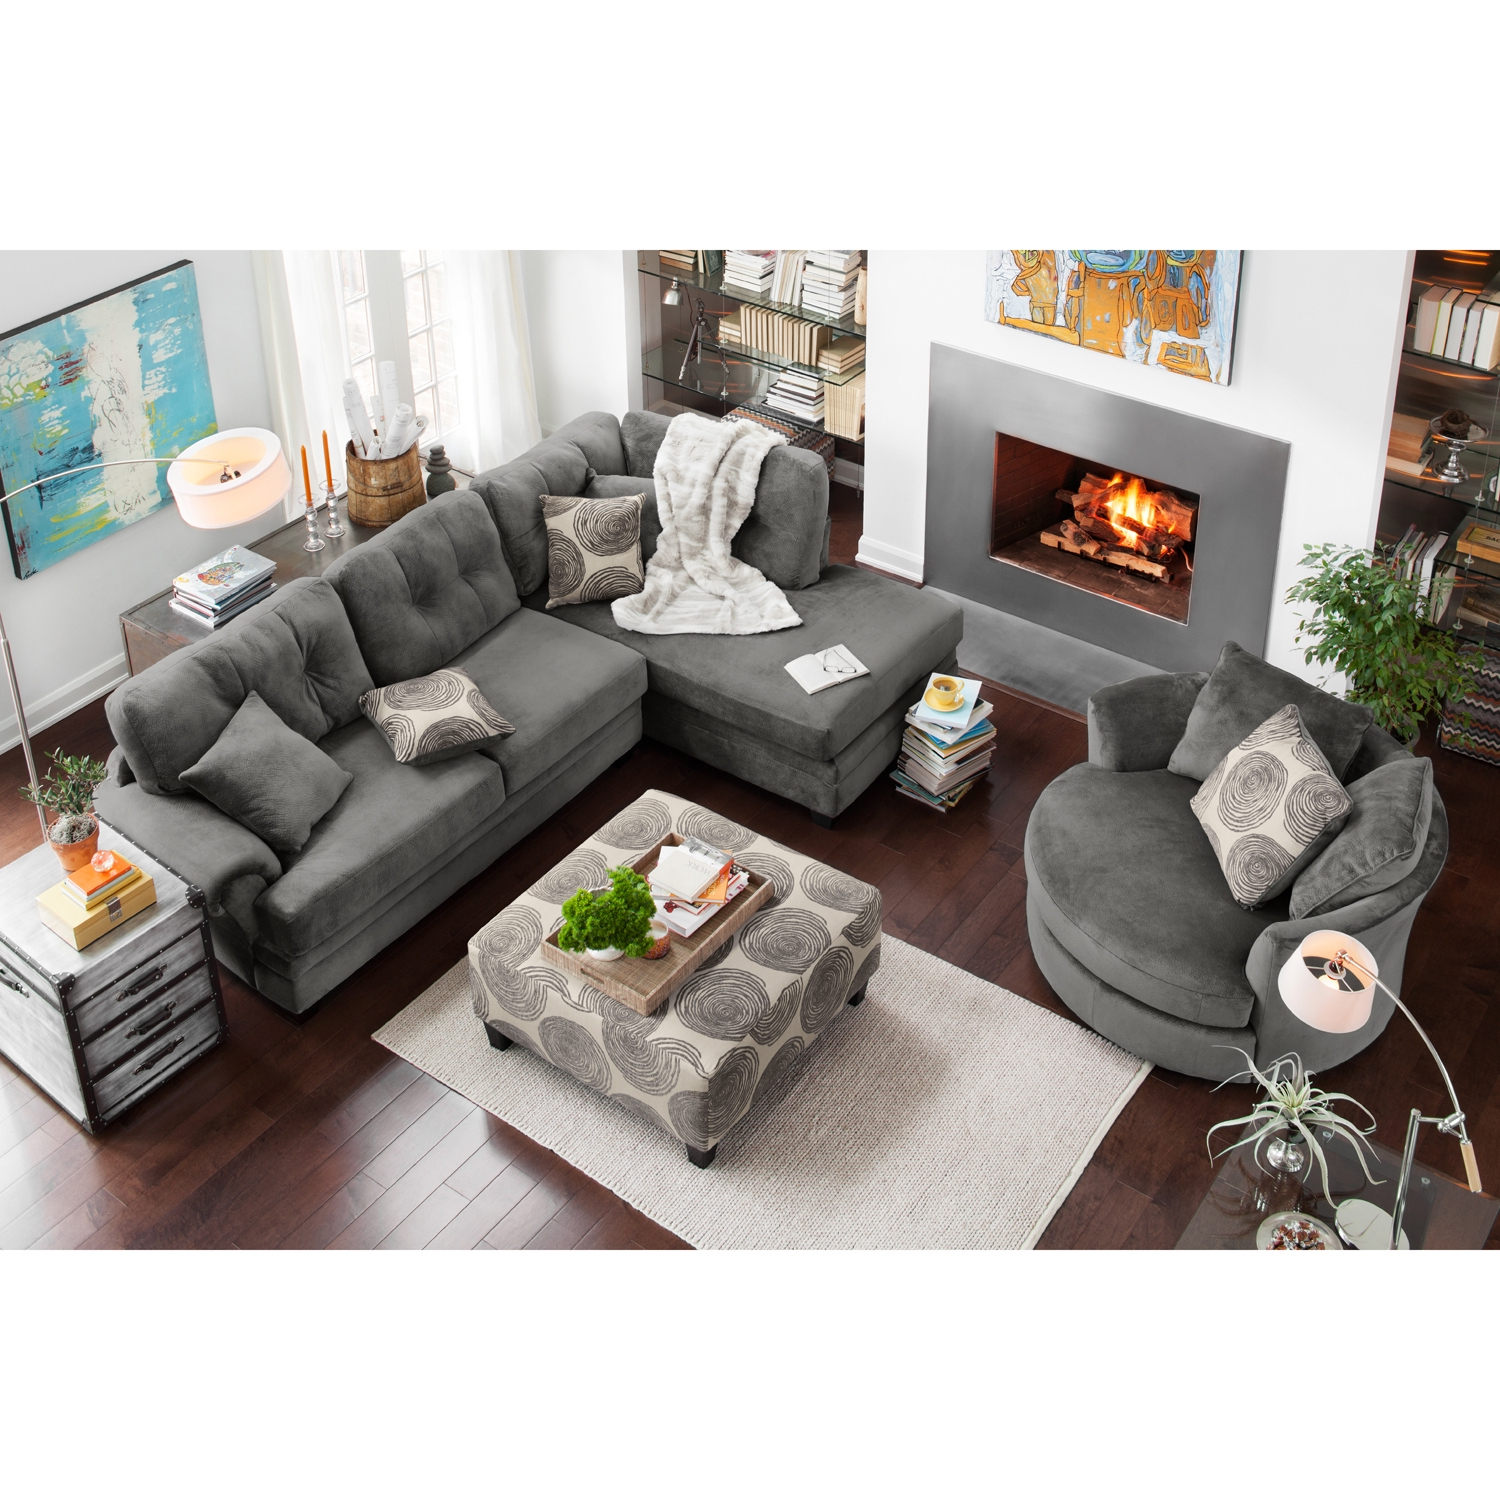 Preferred Tenny Dark Grey 2 Piece Right Facing Chaise Sectionals With 2 Headrest Pertaining To Left Facing Sectional Sofa Leather Arm Truscotti Stock Rooms Gray (View 16 of 20)